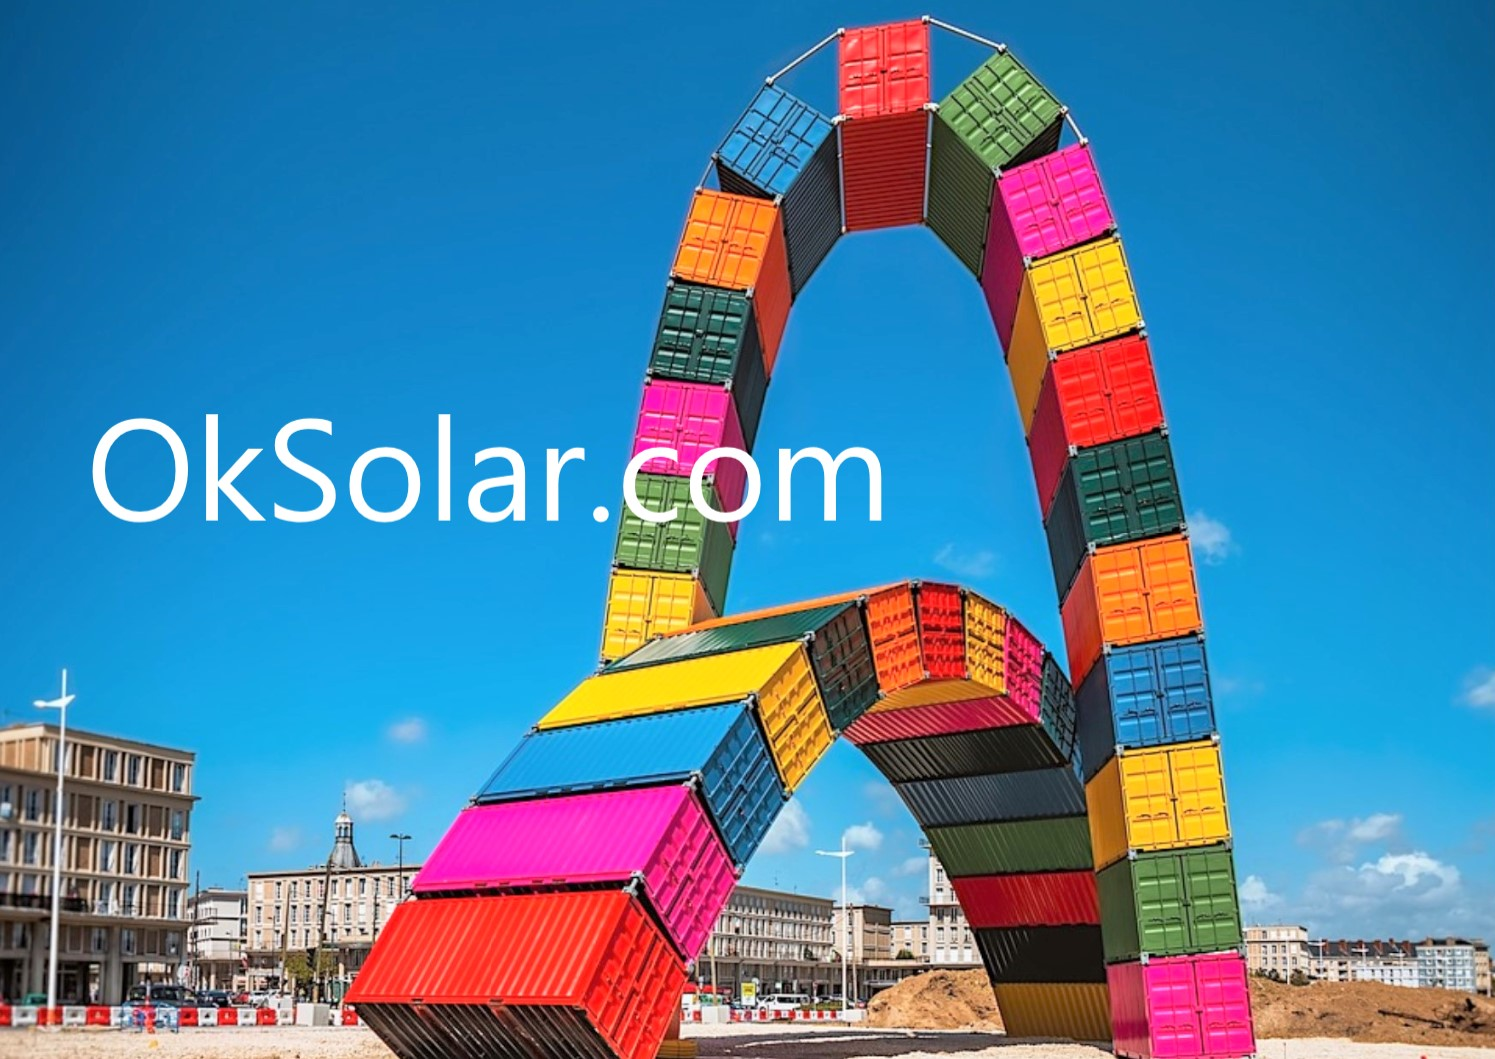 OkSolar.com Estimated Shipping Lead Time : Estimated Shipping Lead Time